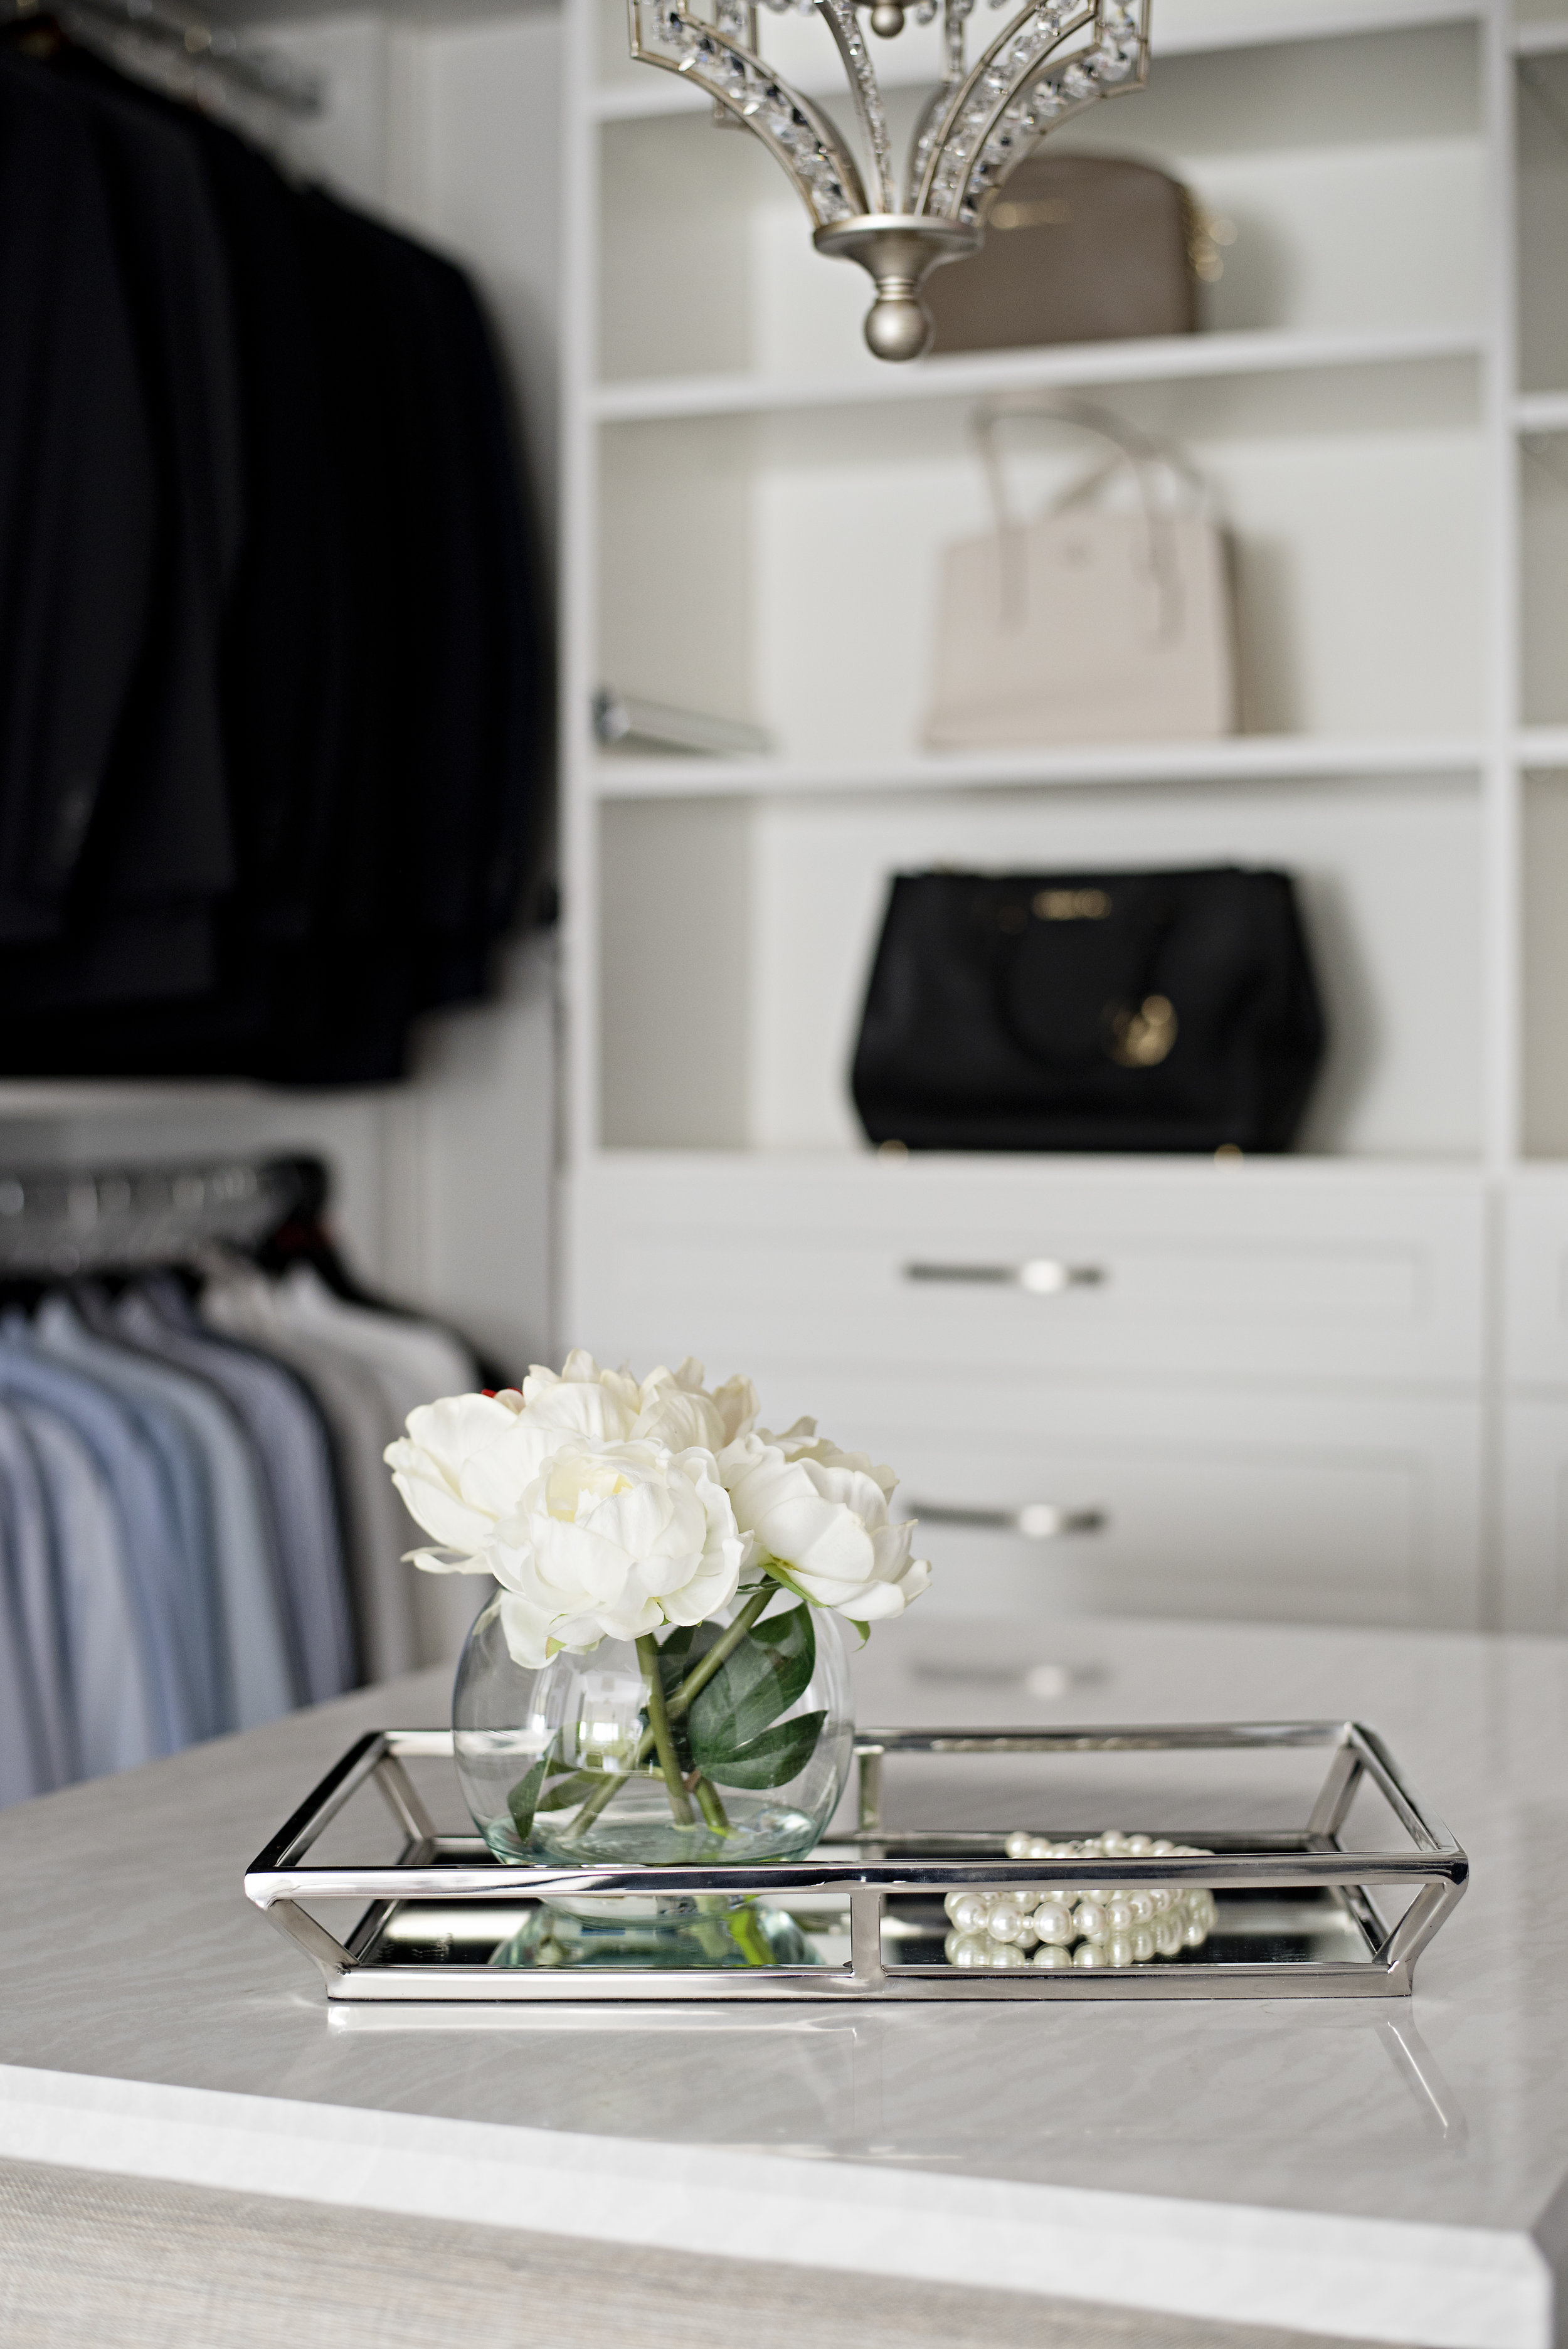 pizzale design interior design accessories decor polished chrome accessory small round vase with white flowers.jpg